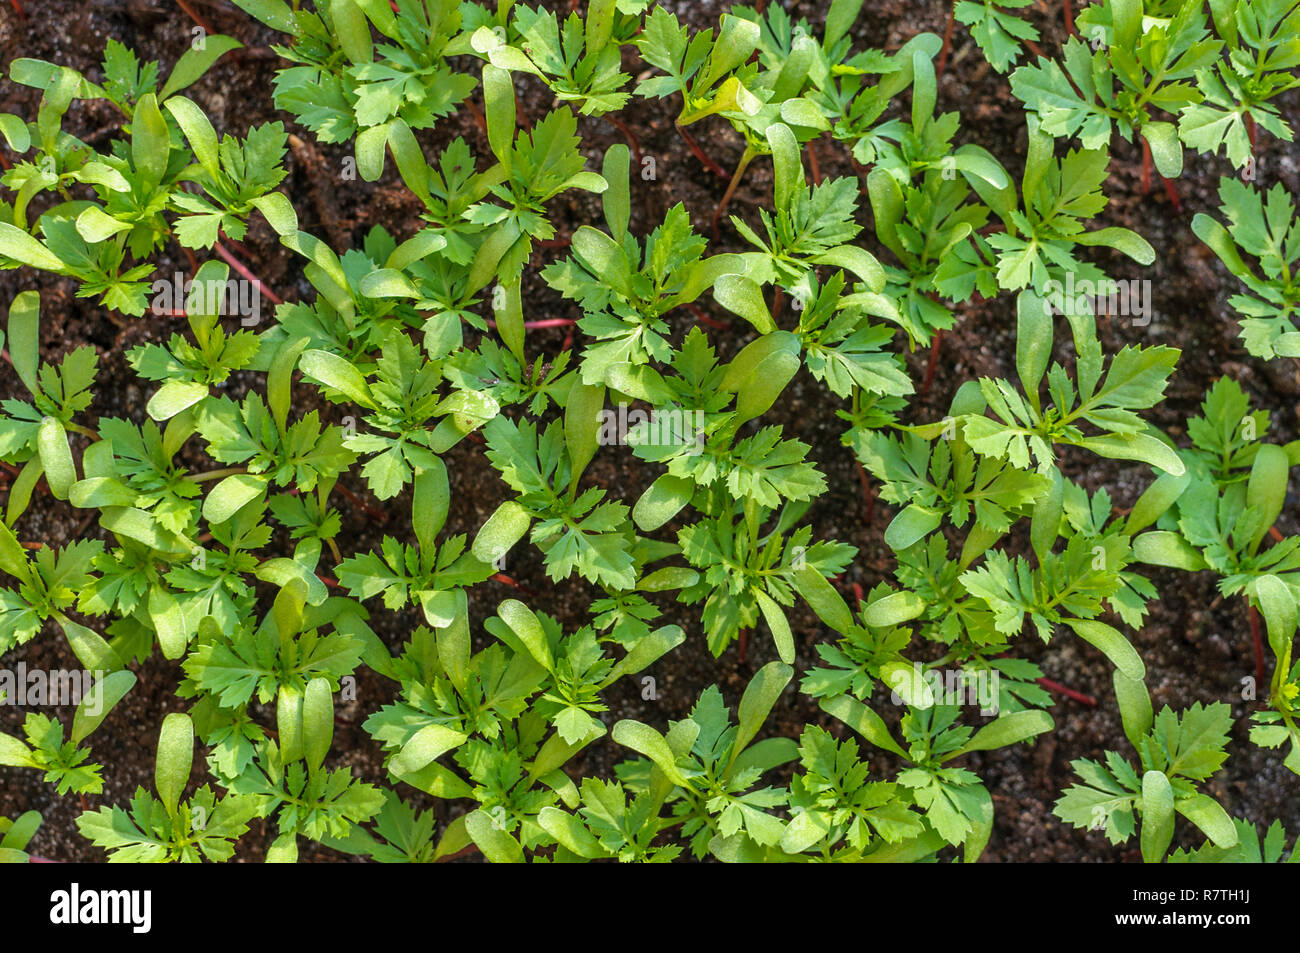 Marigold Sprout Stock Photos Marigold Sprout Stock Images Alamy